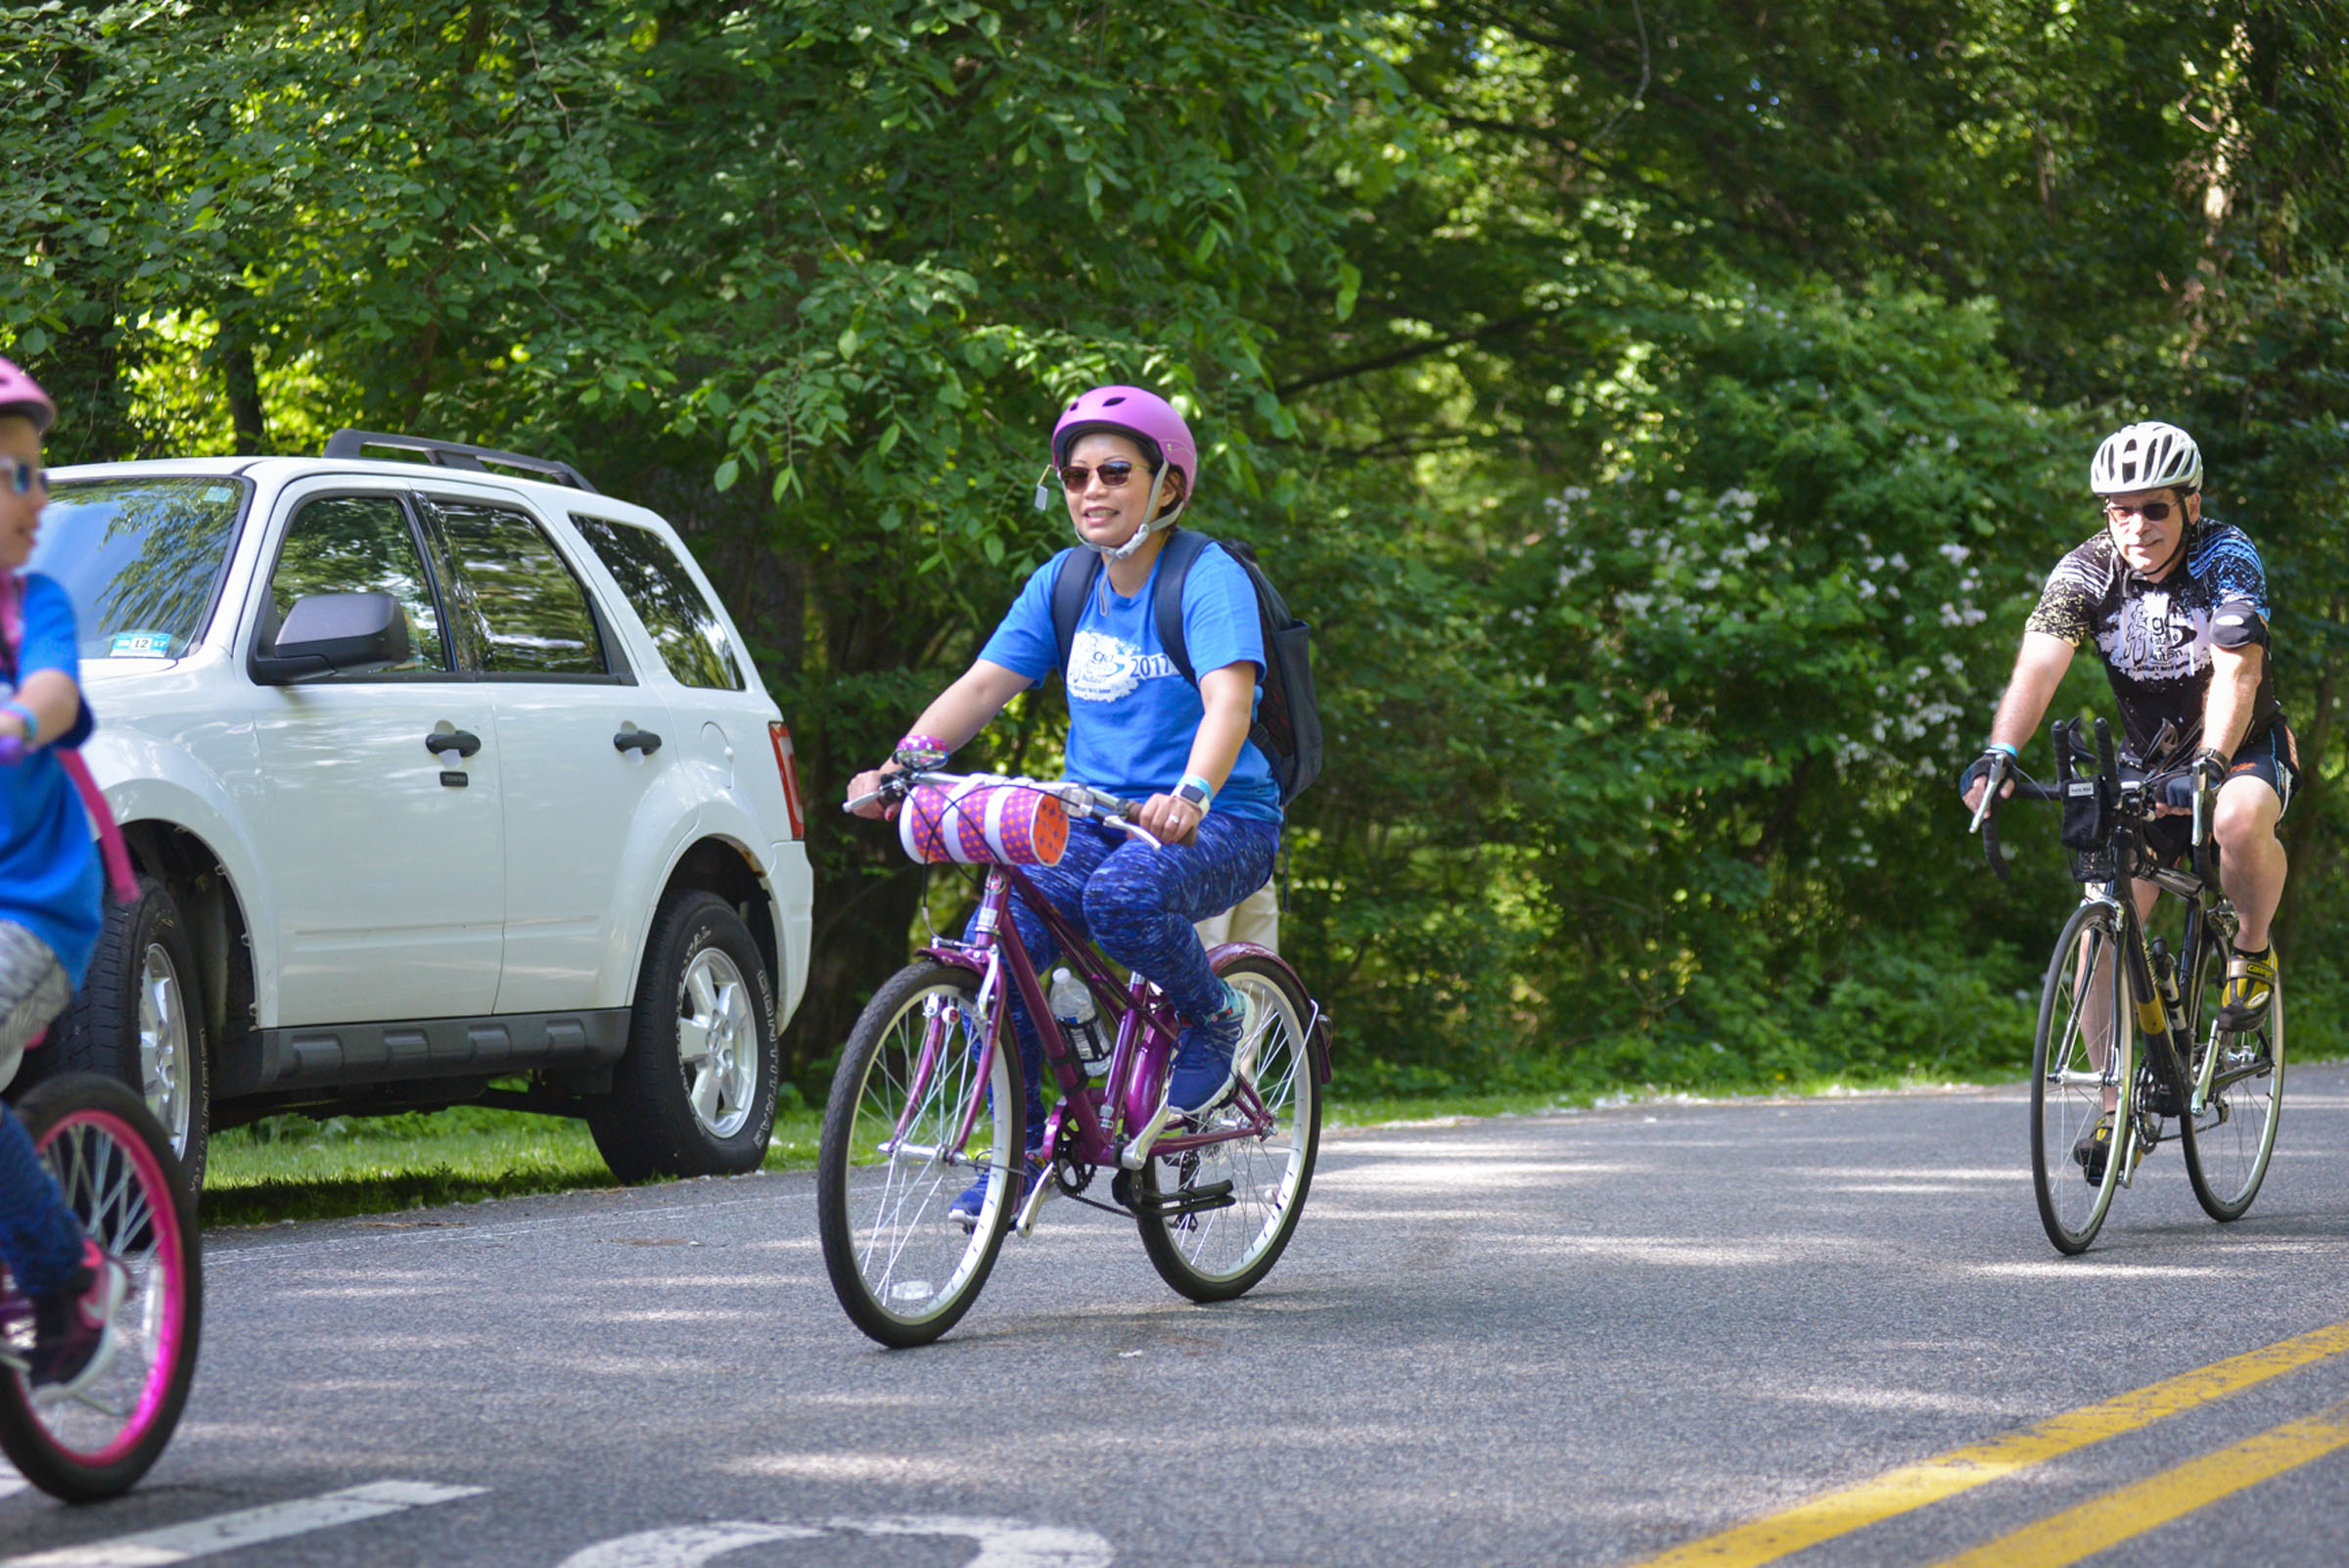 2017-06-04 GTD4A Charity Bike Ride - BCC - Paramus NJ-2062.jpg